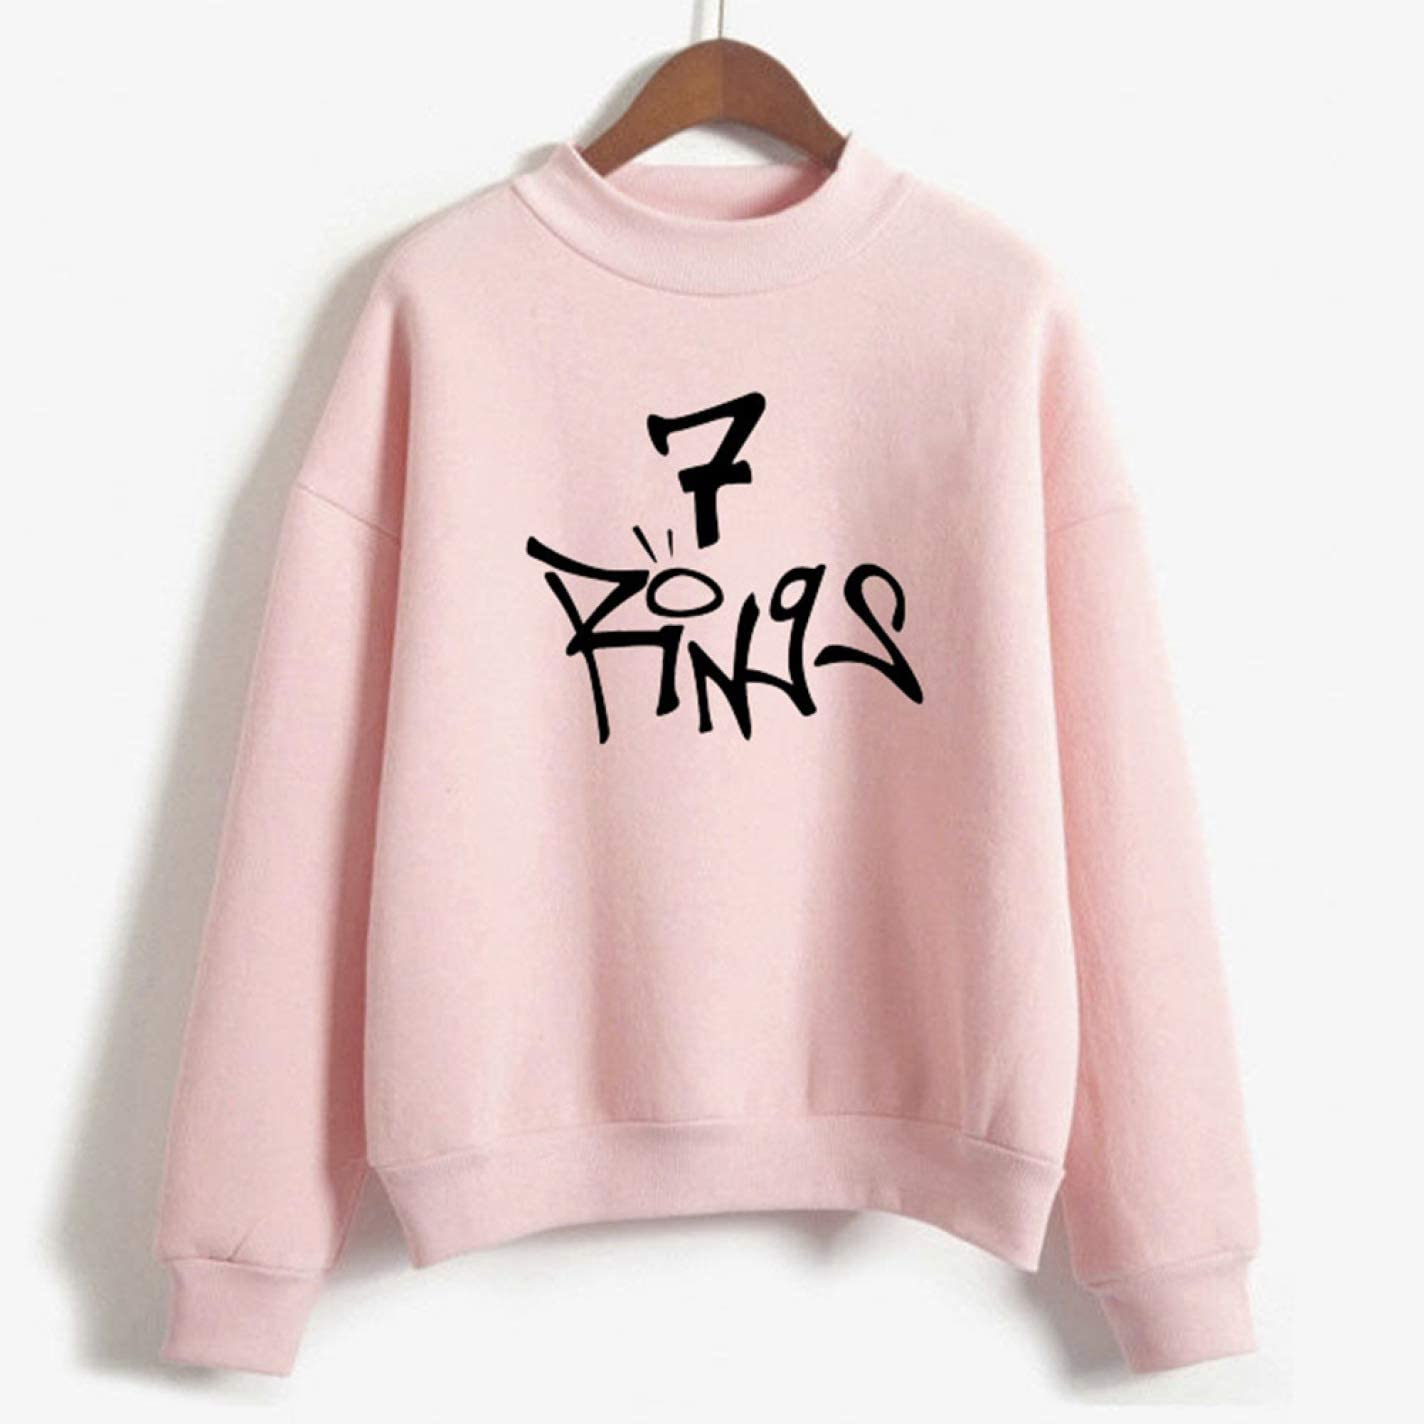 DK-tre Lovely Sweater Sweatshirt Hoodie 7 Rings Break Up with Your